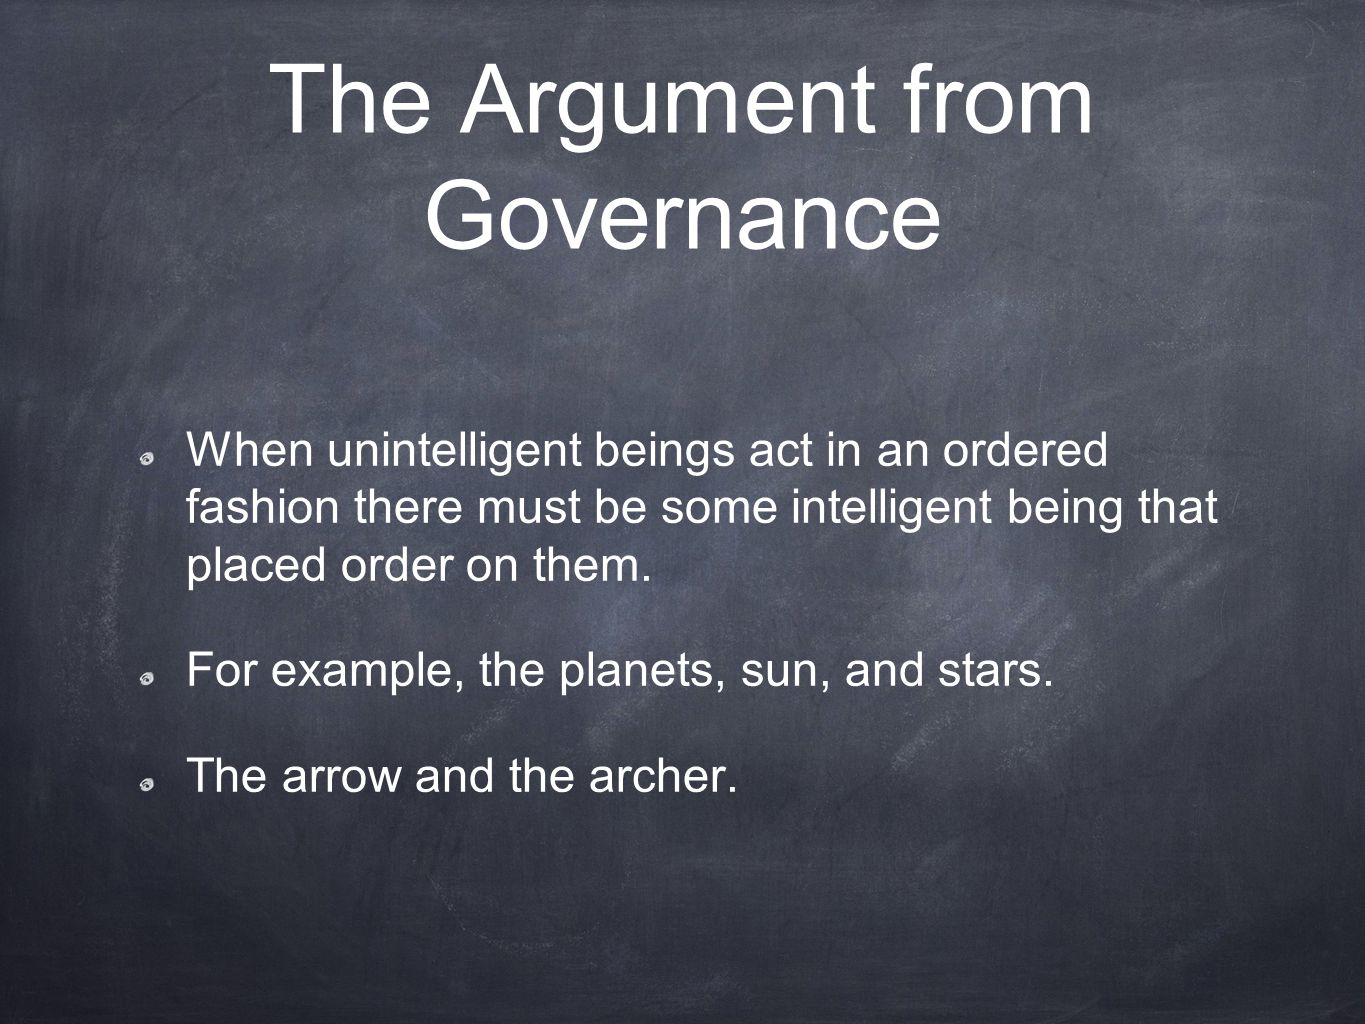 The Argument from Governance